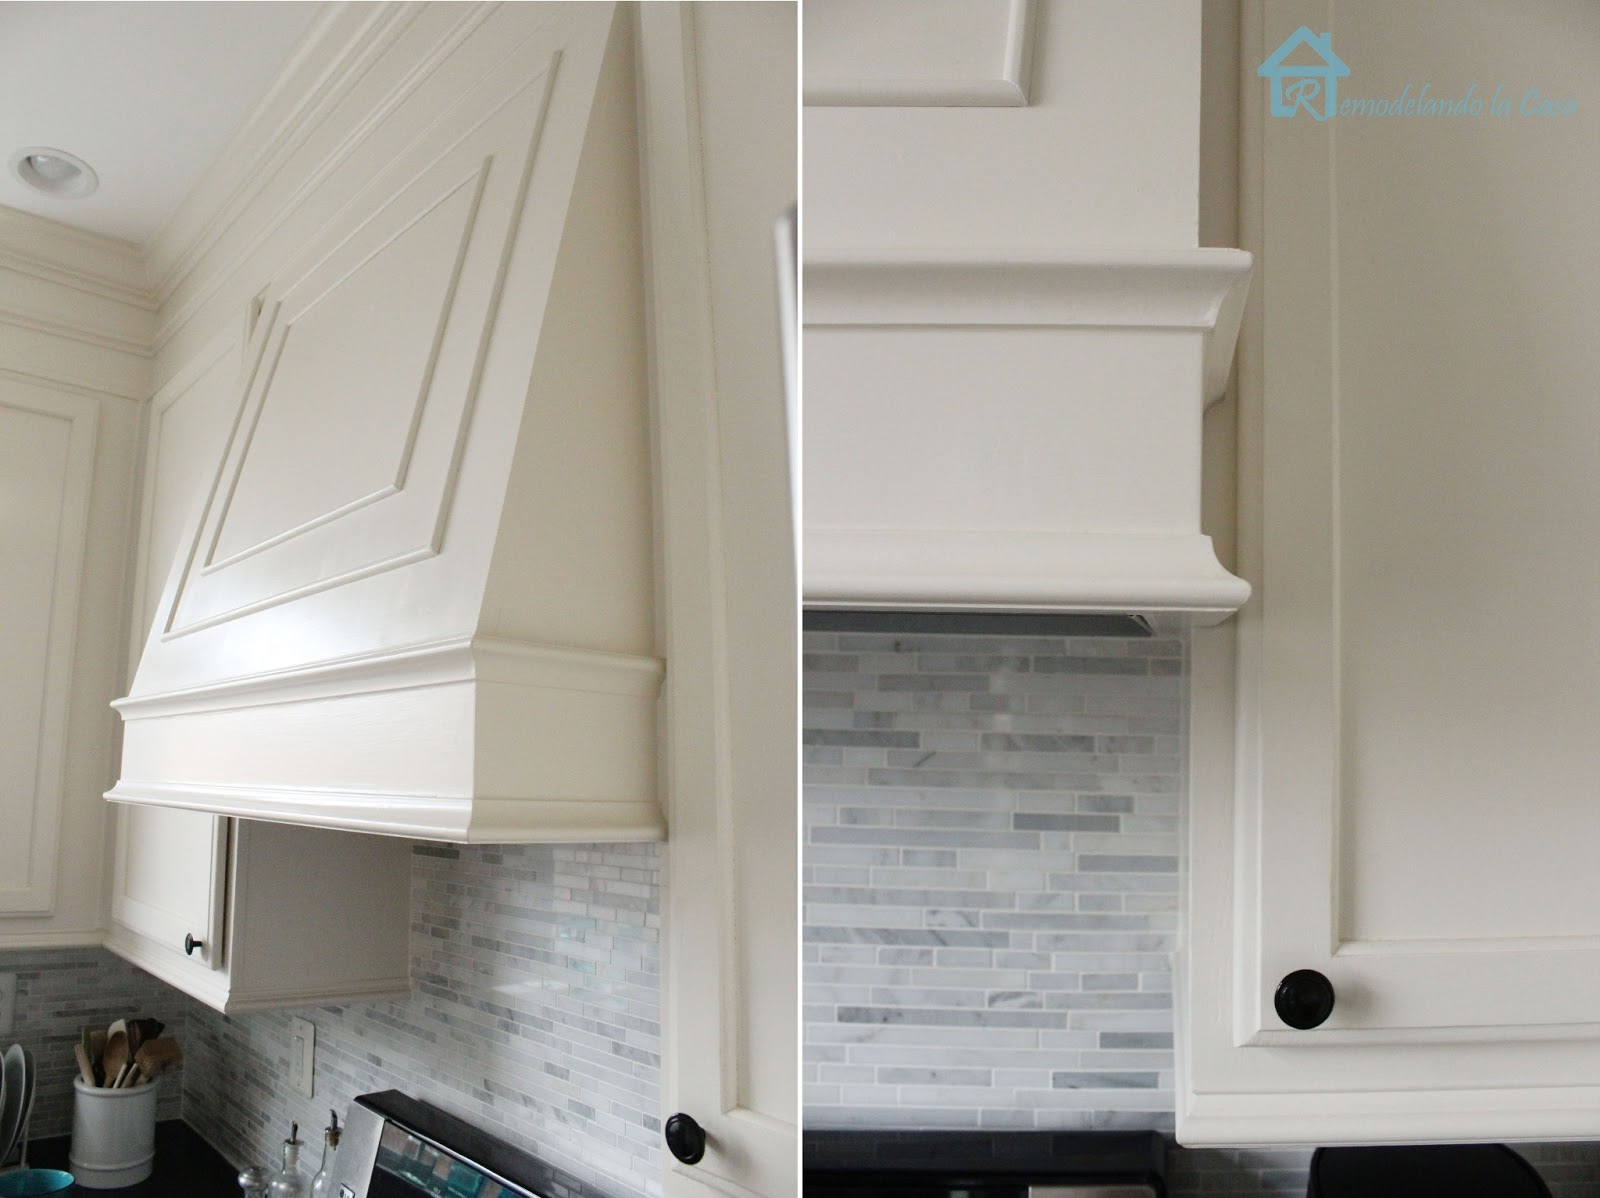 Kitchen Exhaust Vent Wall Cap Farm Sink For How To Build A Range Hood - Remodelando La Casa